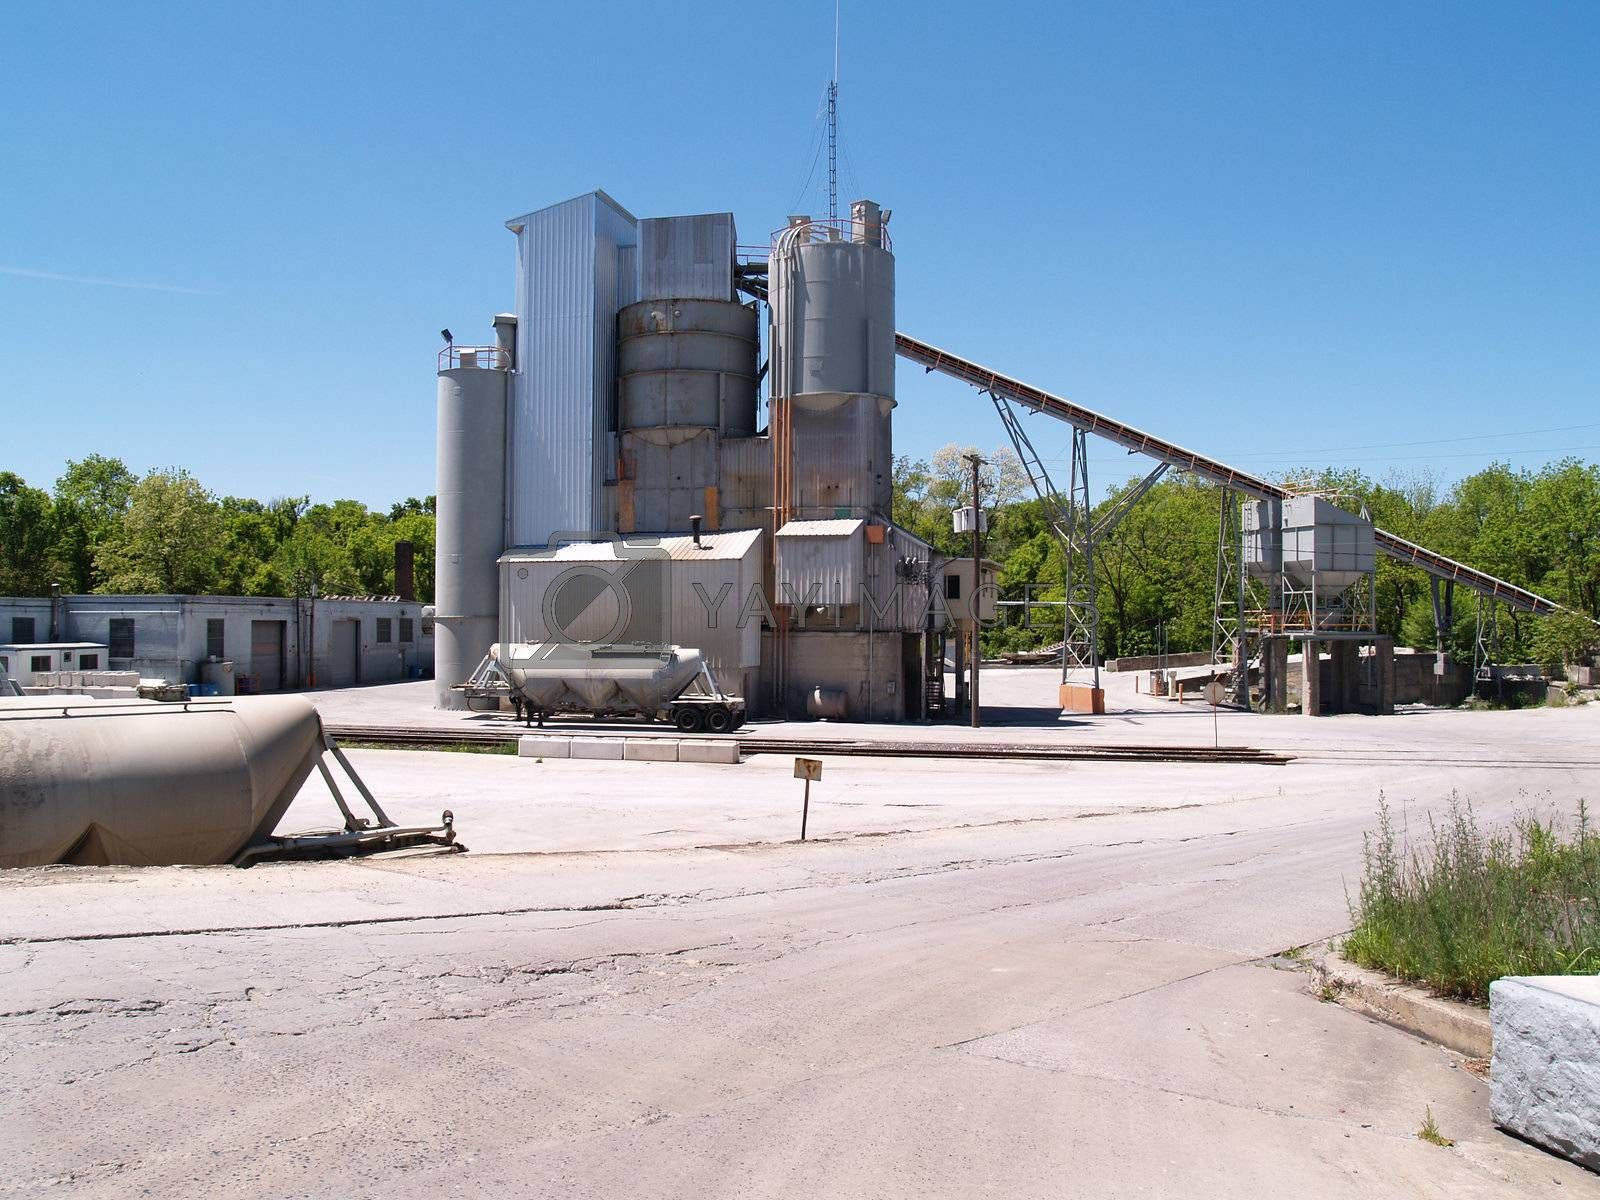 exterior view of a large industrial site